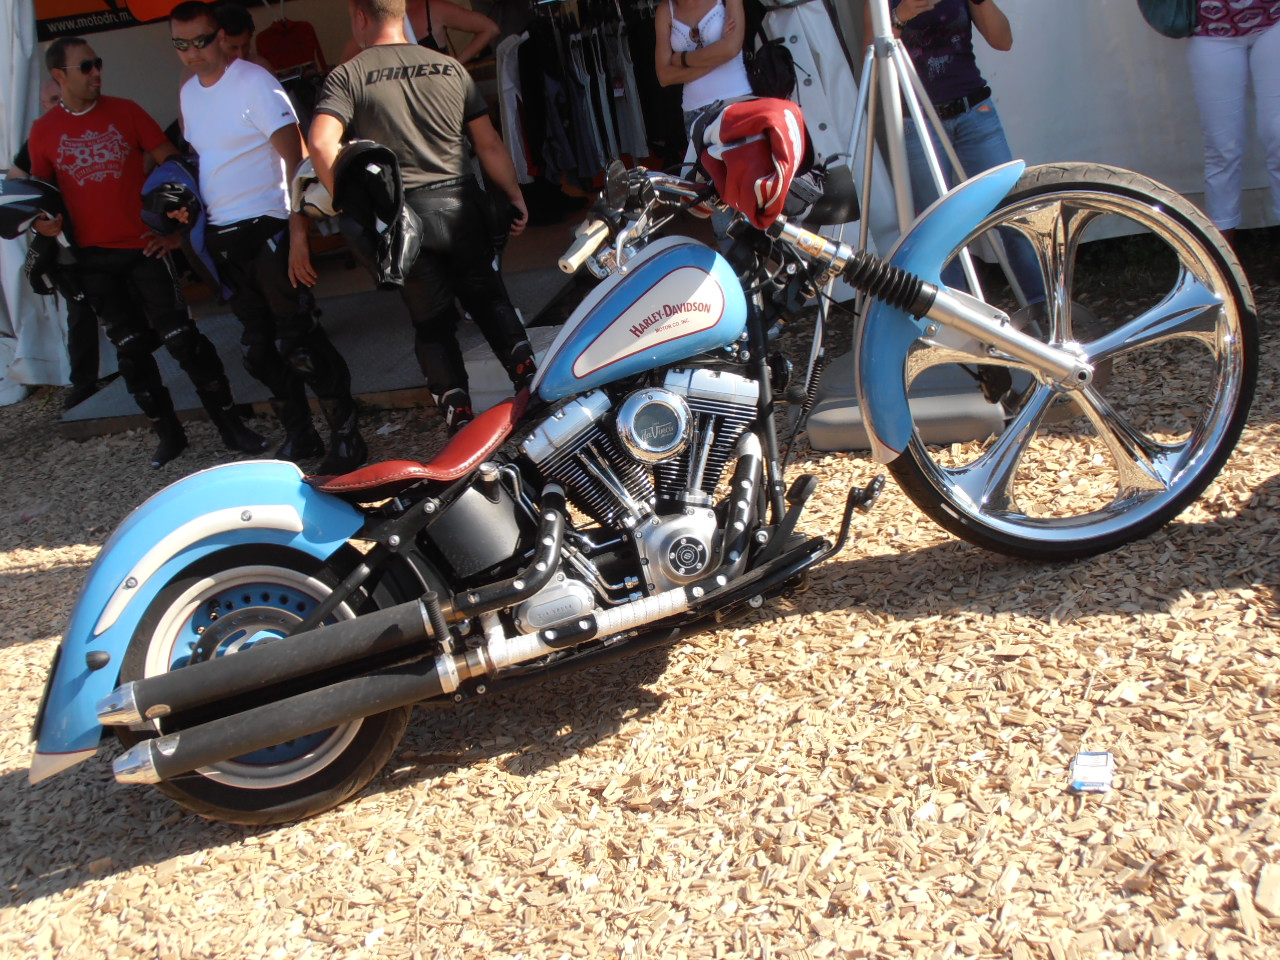 Custom Bagger 23' Wheels http://www.hdcf.fi/juttutupa/viewtopic.php?p=207378